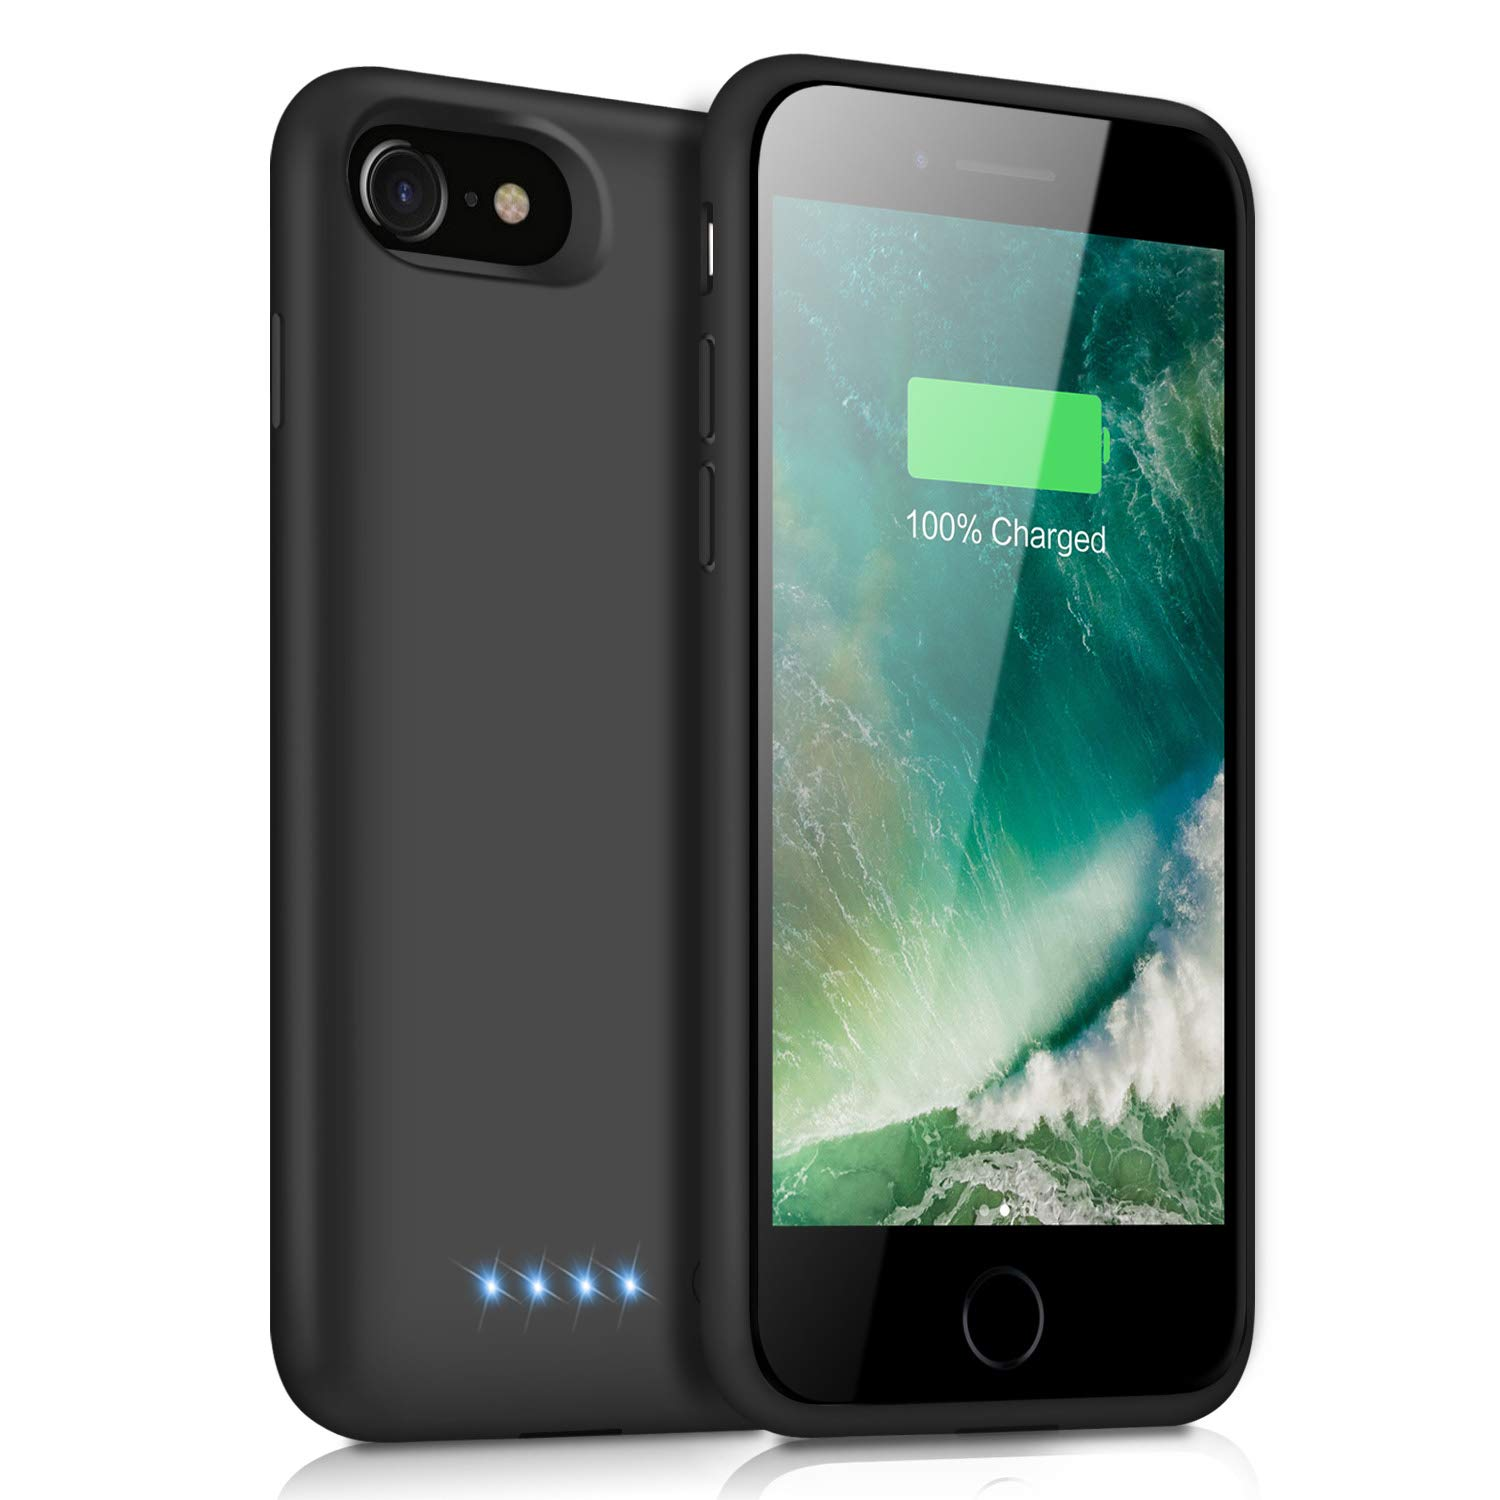 Battery Case for iPhone 8/7, Yacikos 6000mAh Portable Charging Case Rechargeable Extended Battery Pack for iPhone 8/7(4.7') Protective Charger Case Backup Power Bank Cover (Black)